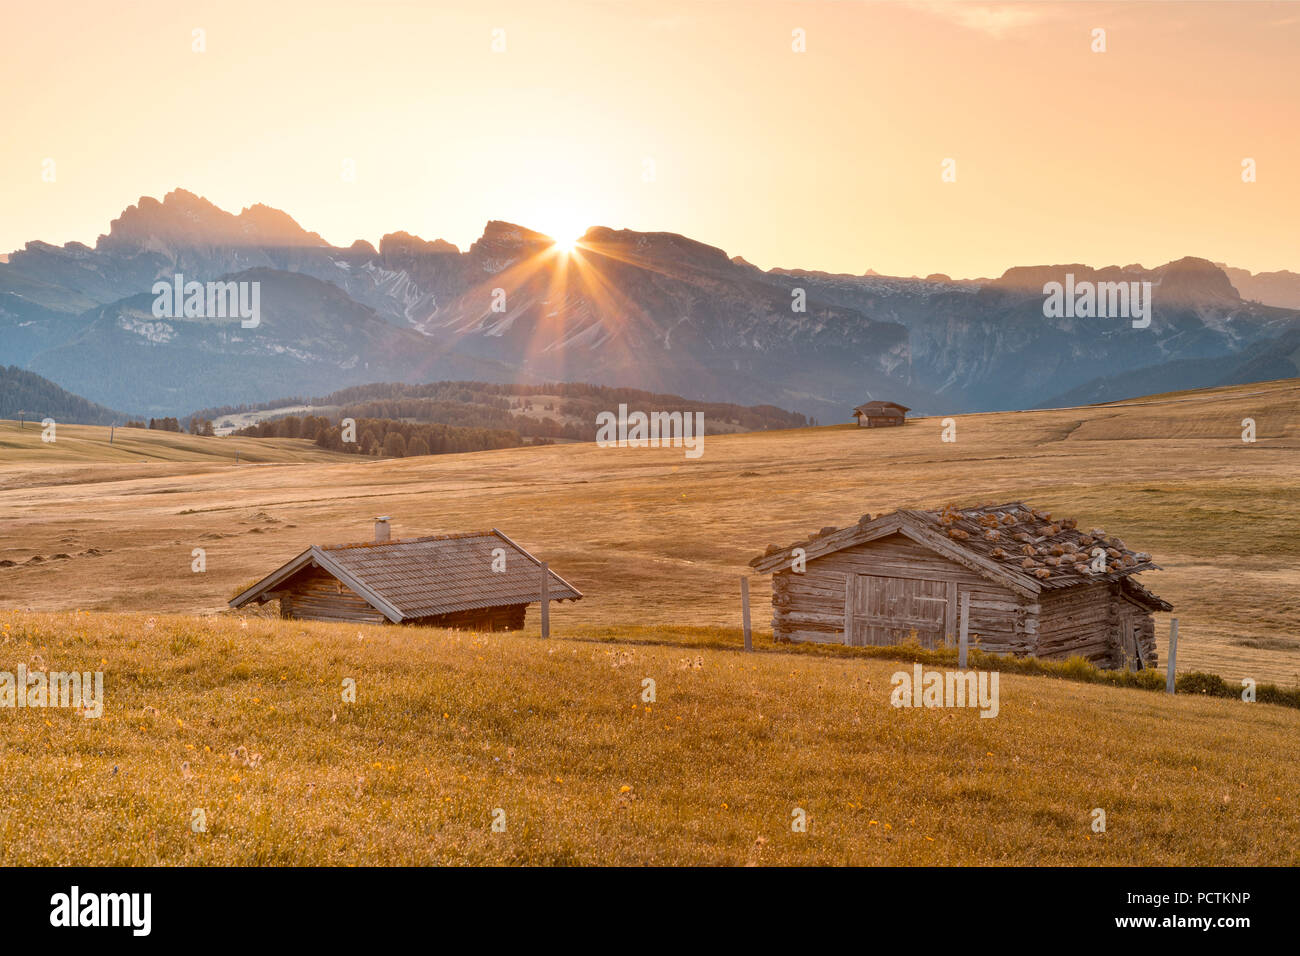 Europe, Italy, Bolzano, South Tyrol, Alpe di Siusi - Seiser Alm, Dolomites, the sun rises behind the Sassolungo Langkofel, in the foreground some wooden huts - Stock Image